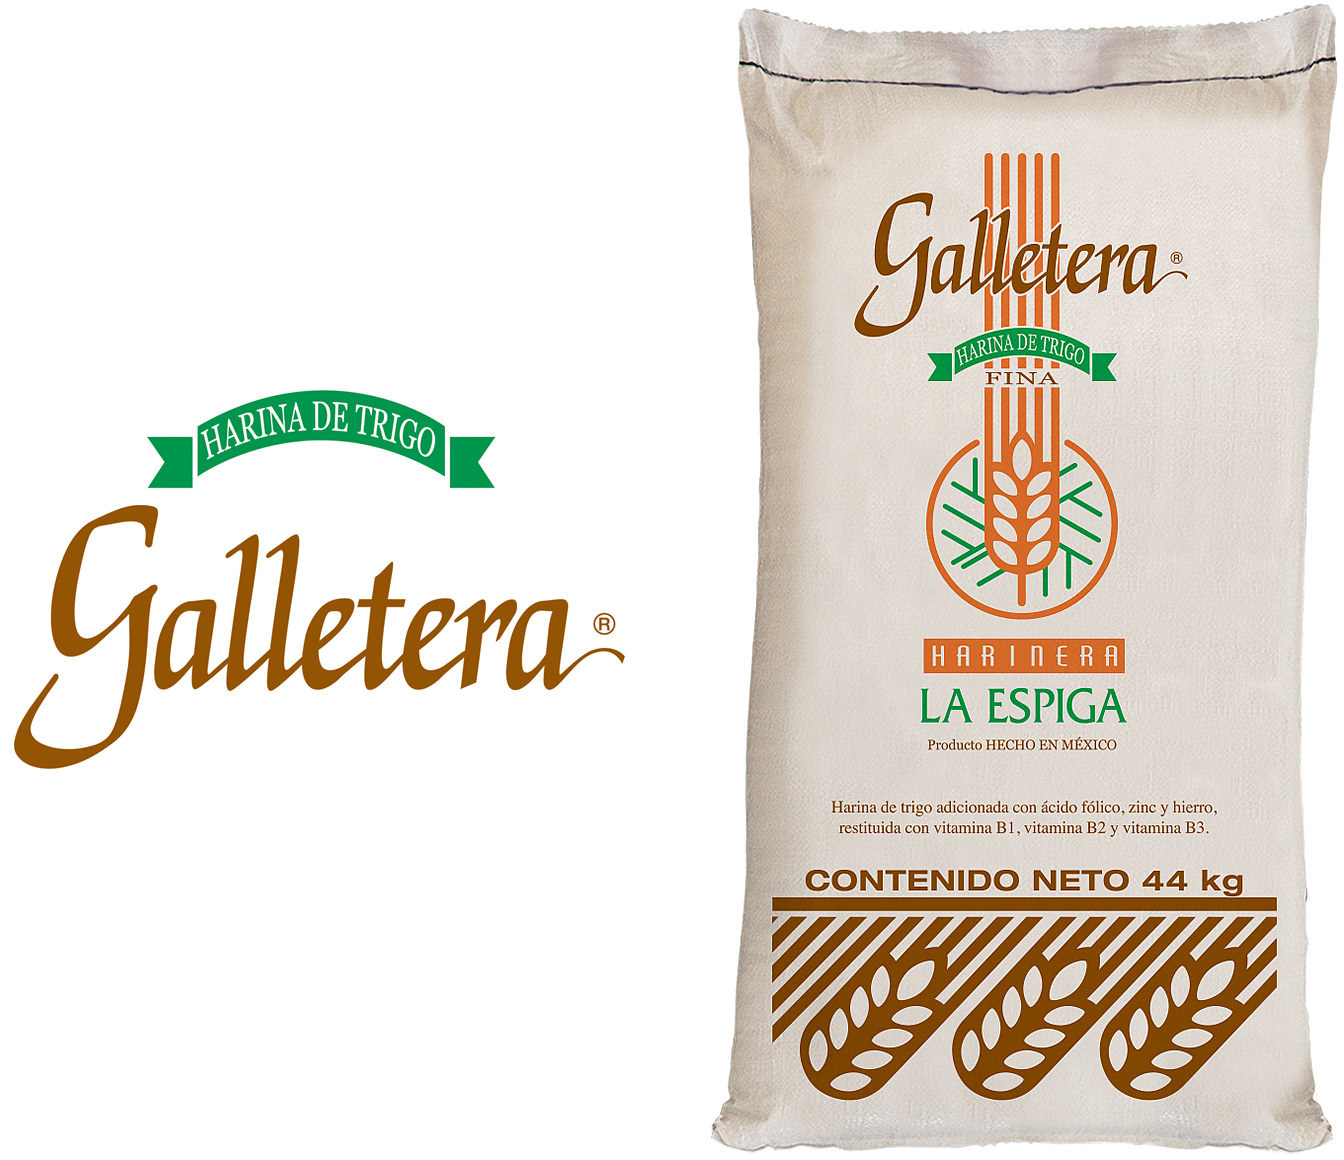 Galletera is a wheat flour especially suited for fine biscuits and cookies.